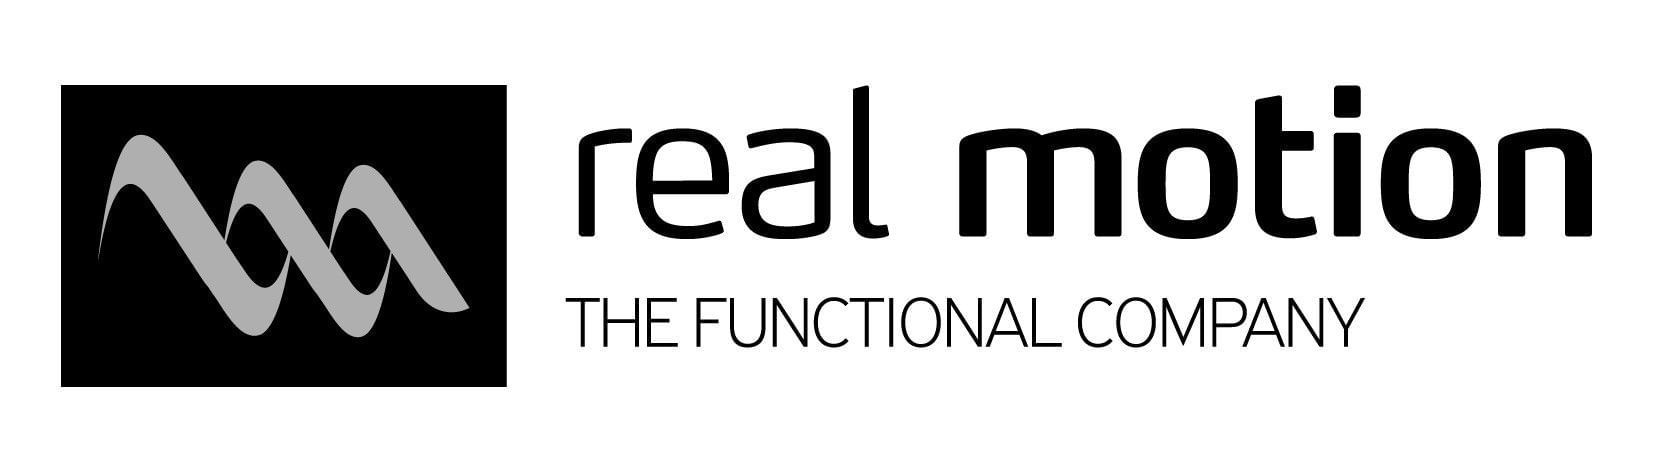 real motion